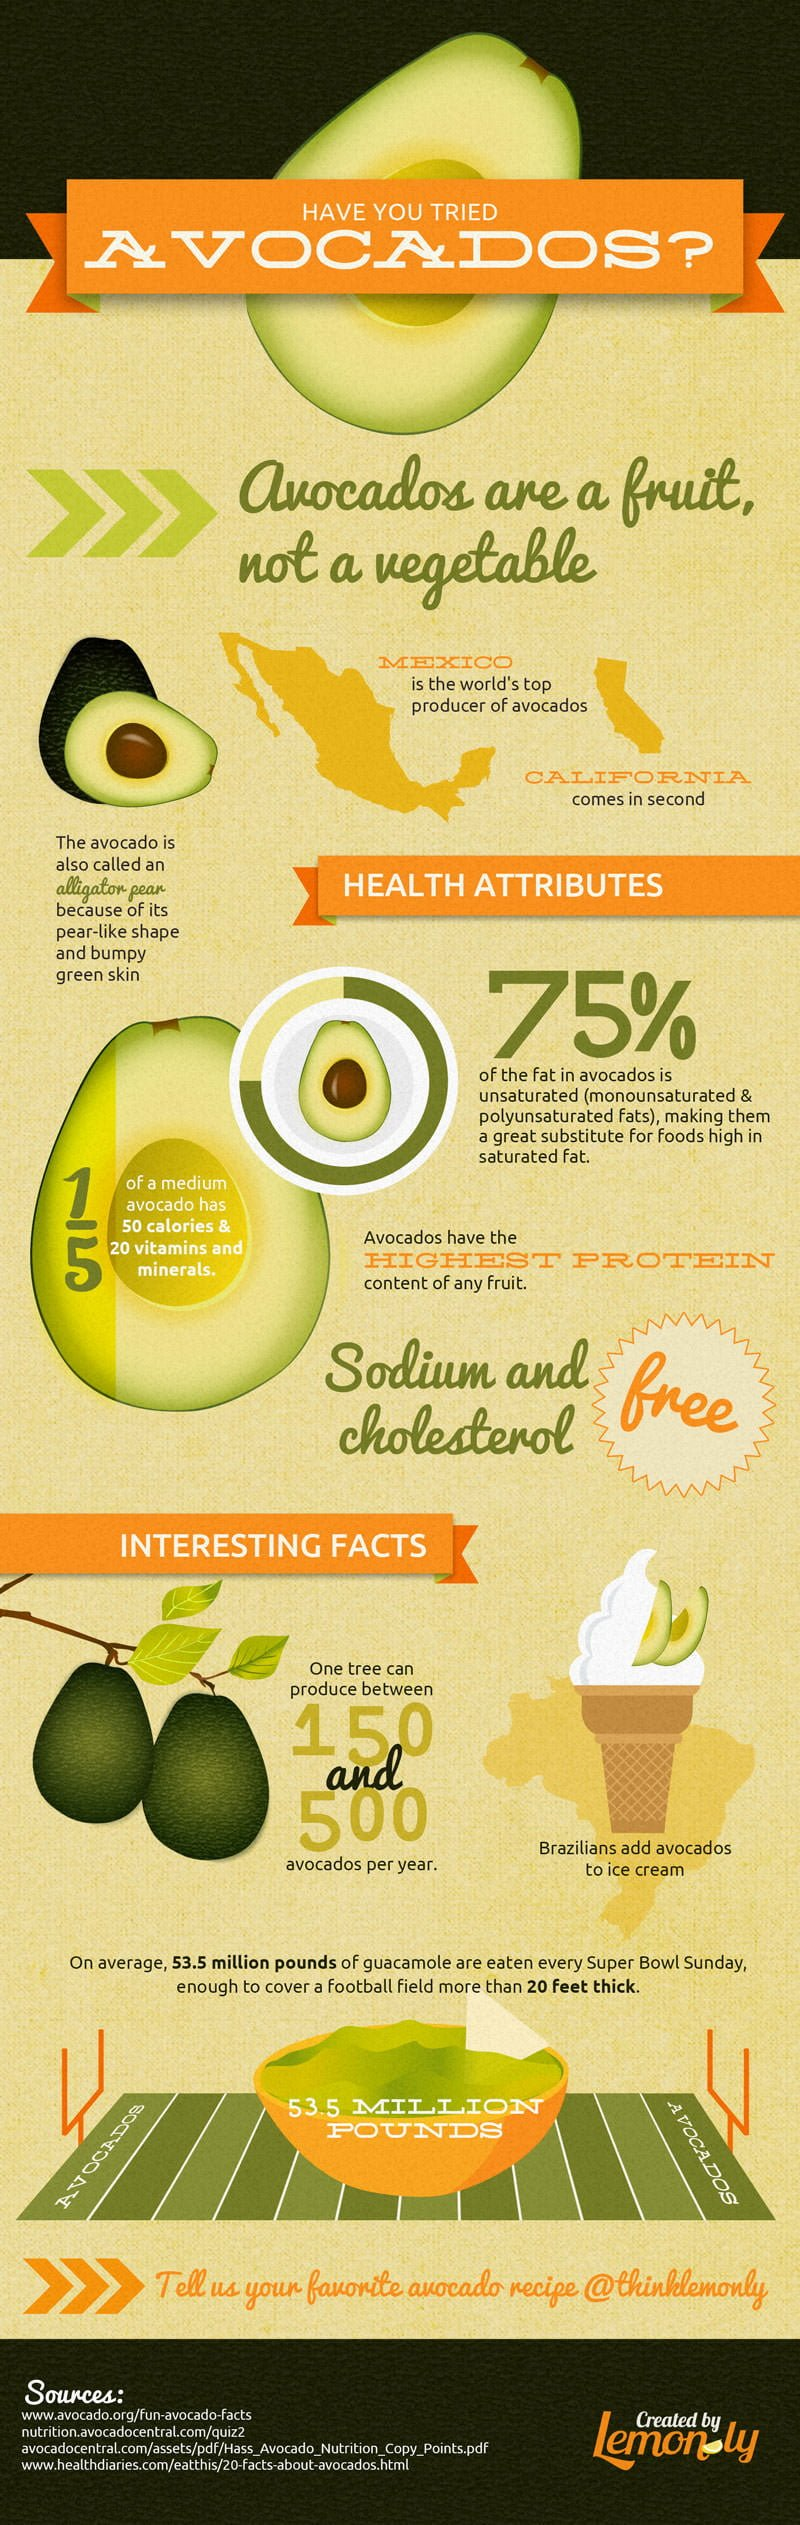 the-health-benefits-of-avocados